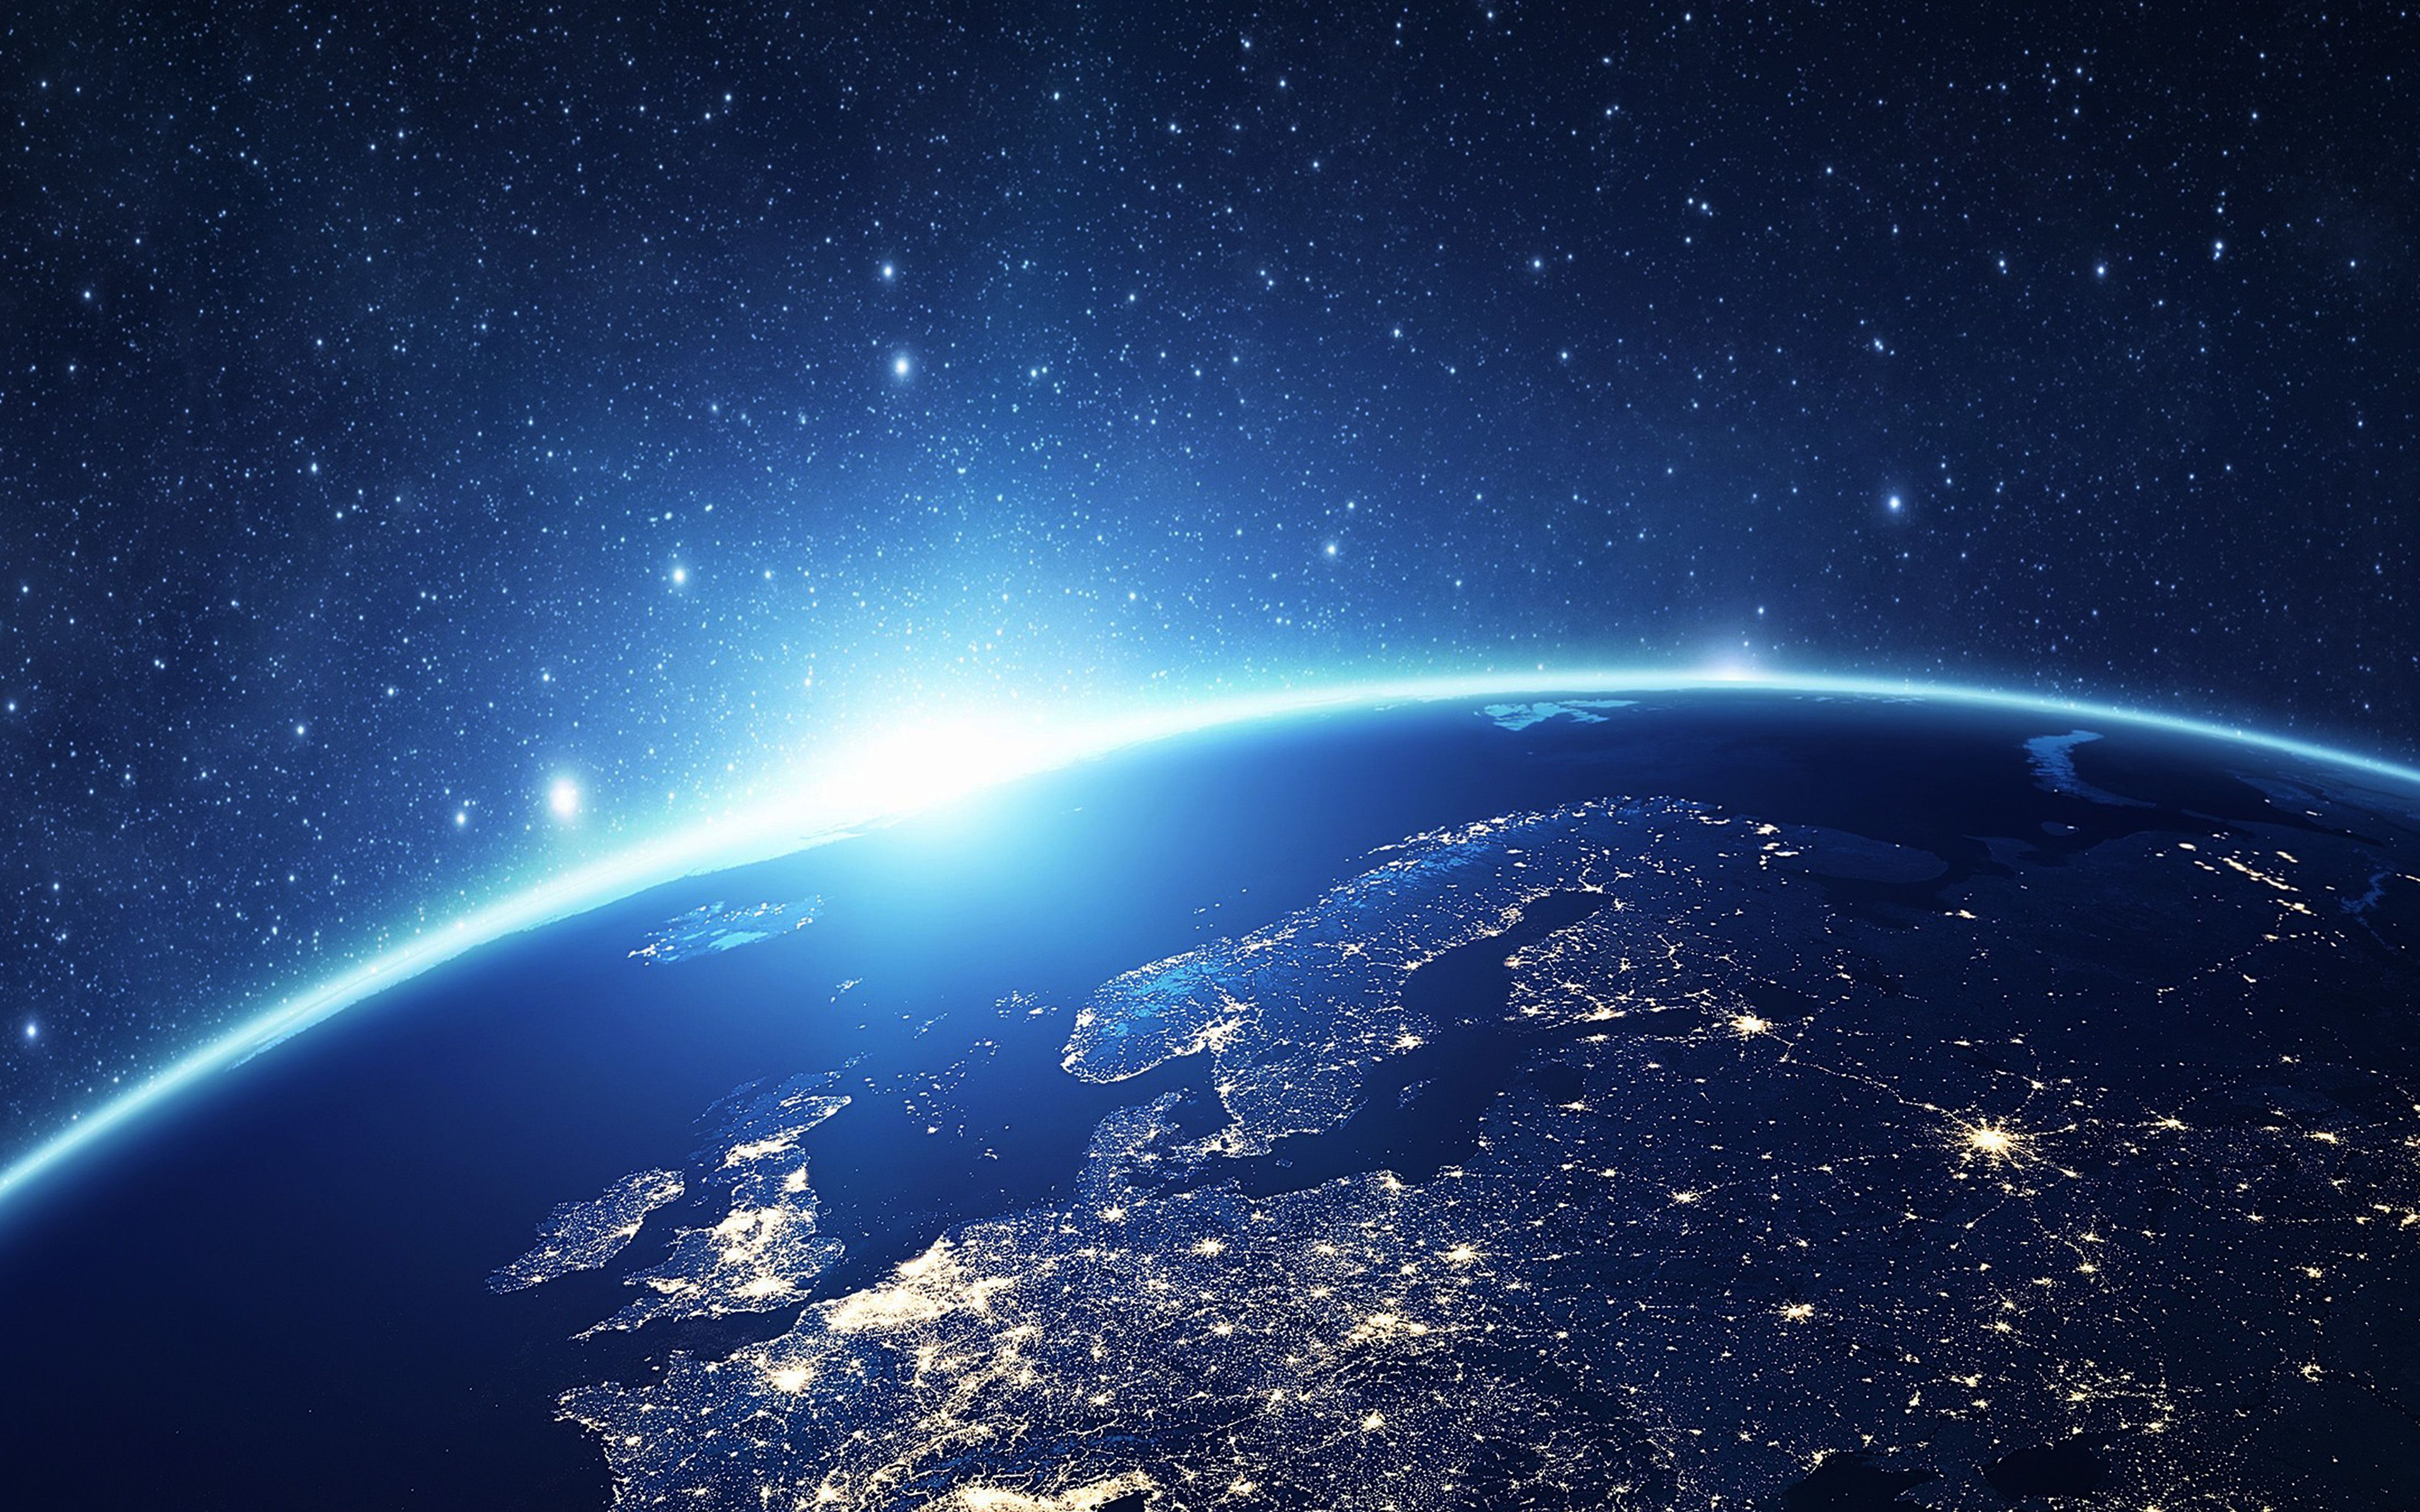 Papers Co Wallpaper Papers Co As24 Europe Earth Blue Space Night Art Illustration 36 3840x2400 4k Wallpaper Jpg Wallpaper Earth Moving Wallpapers Background